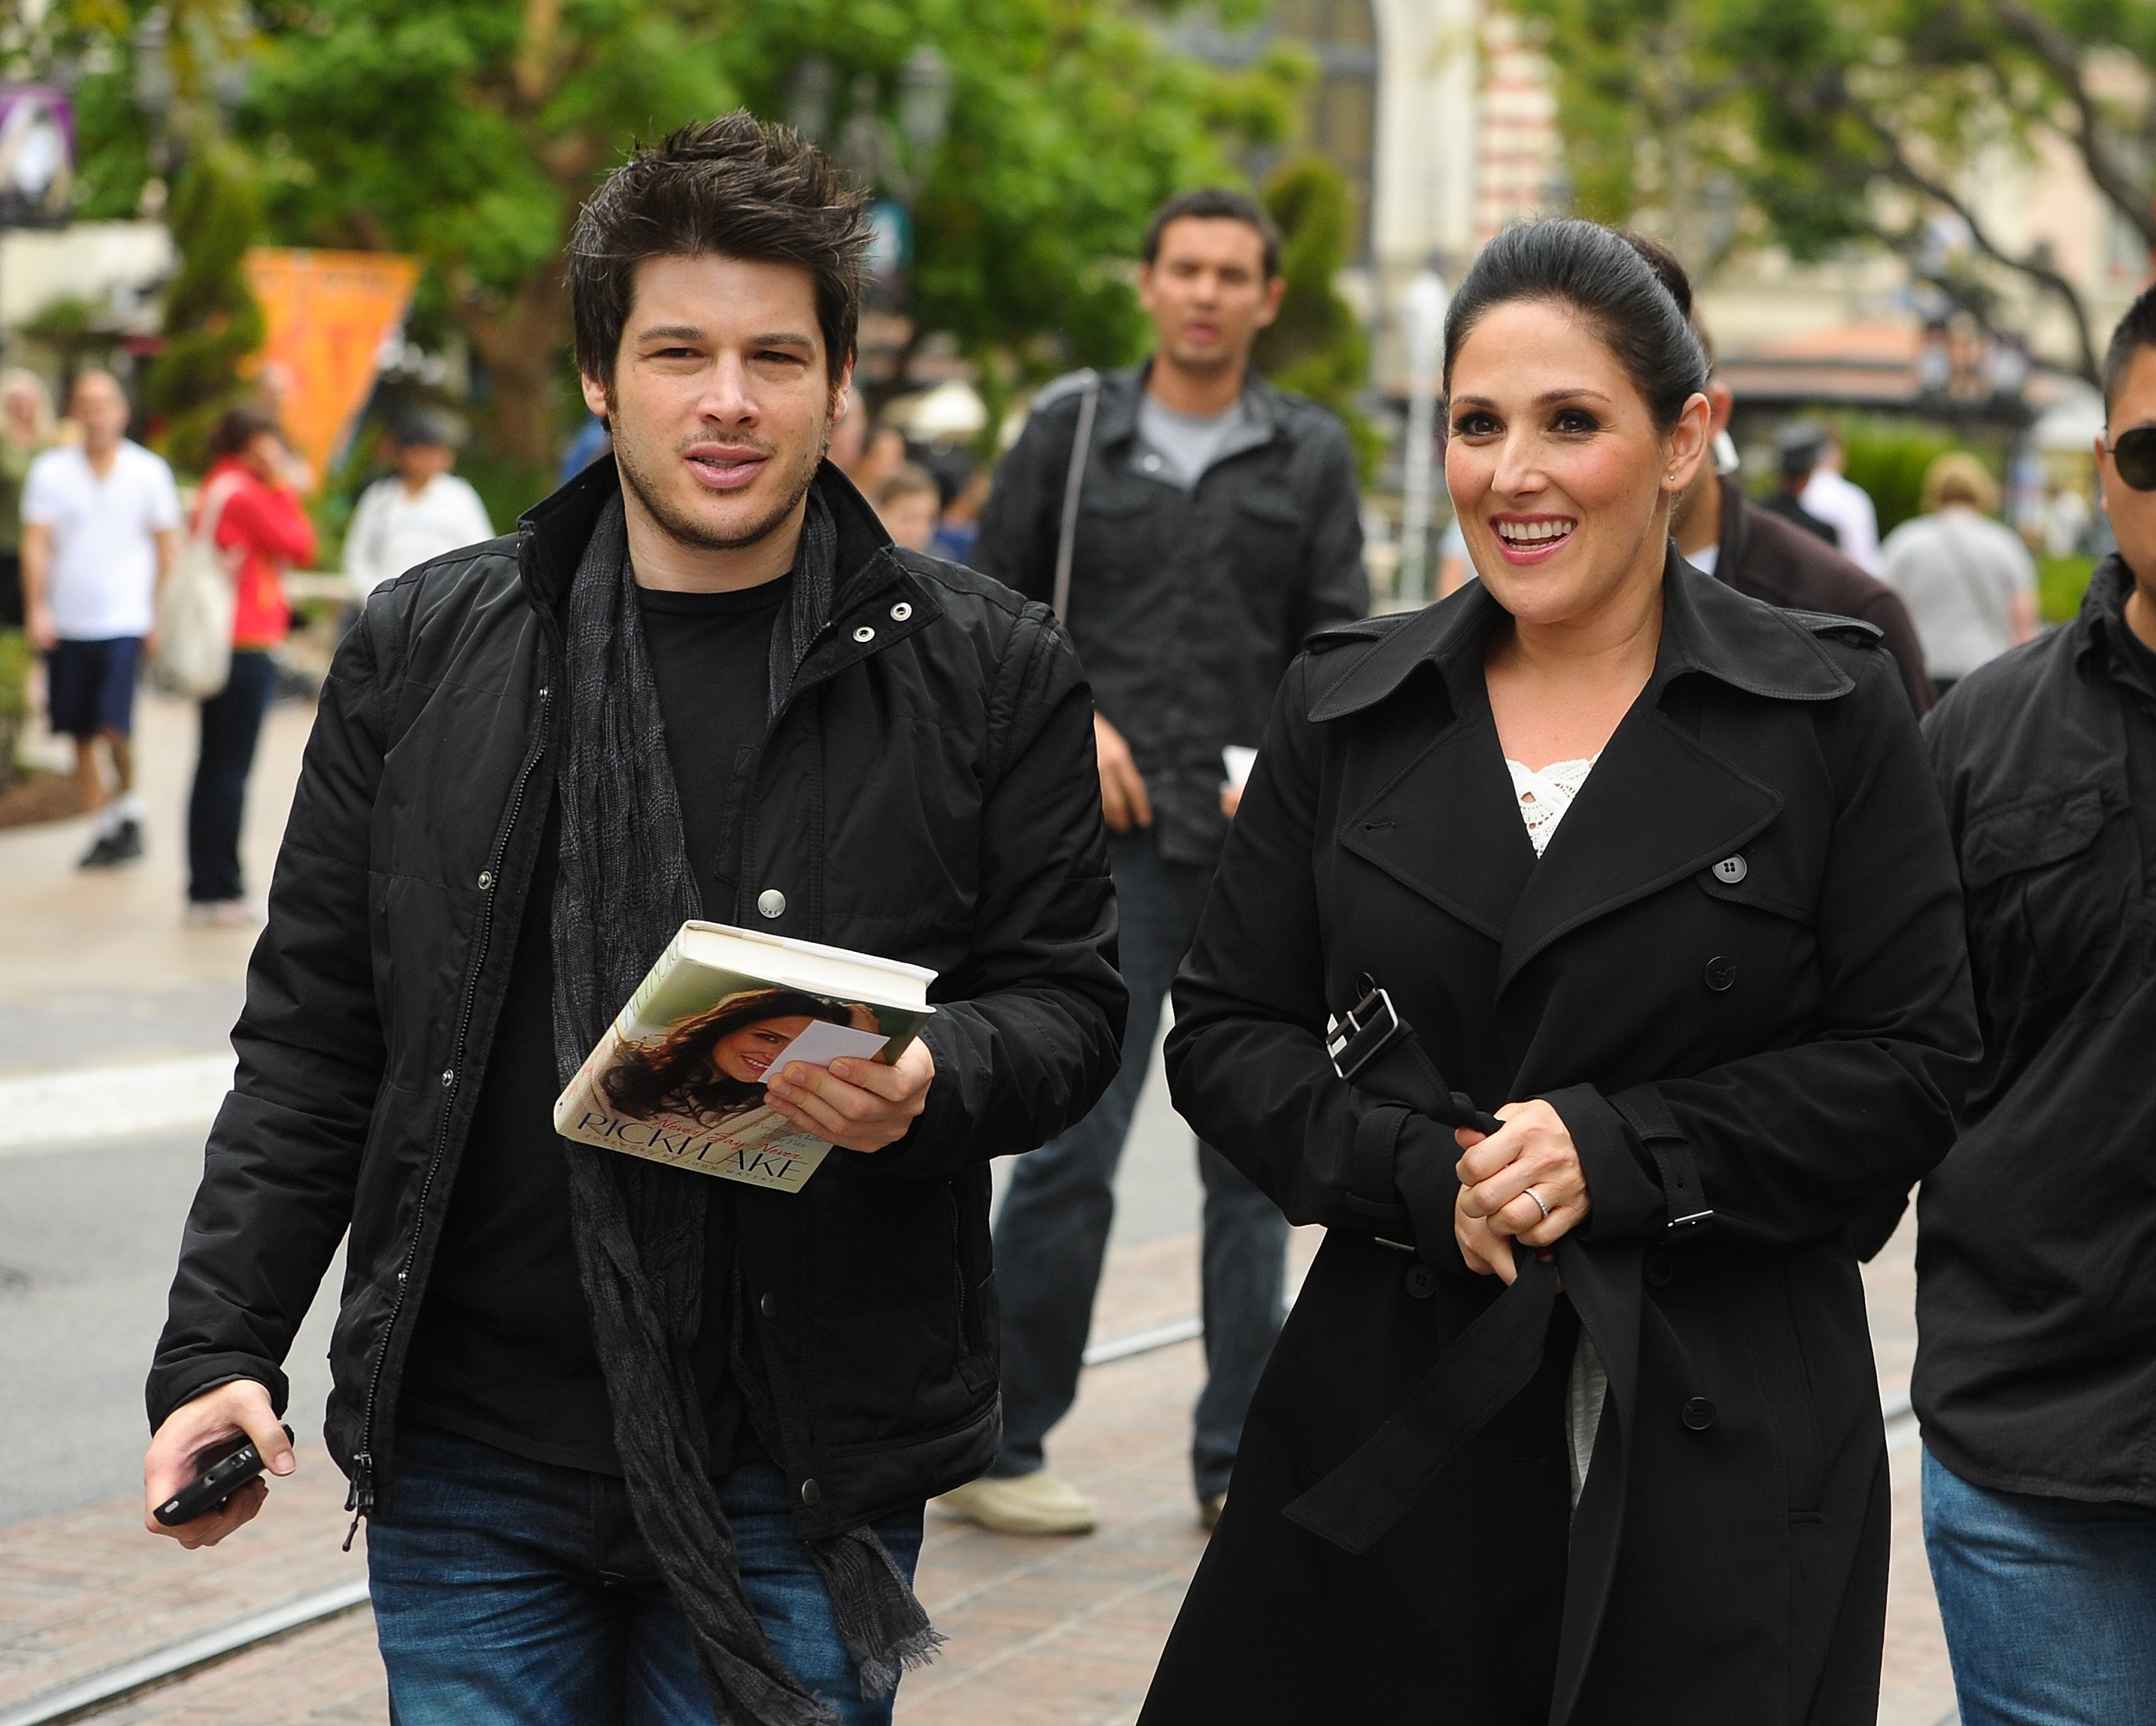 Ricki Lake and Christian Evans are sighted at The Grove on April 23, 2012 in Los Angeles, California | Photo: Getty Images